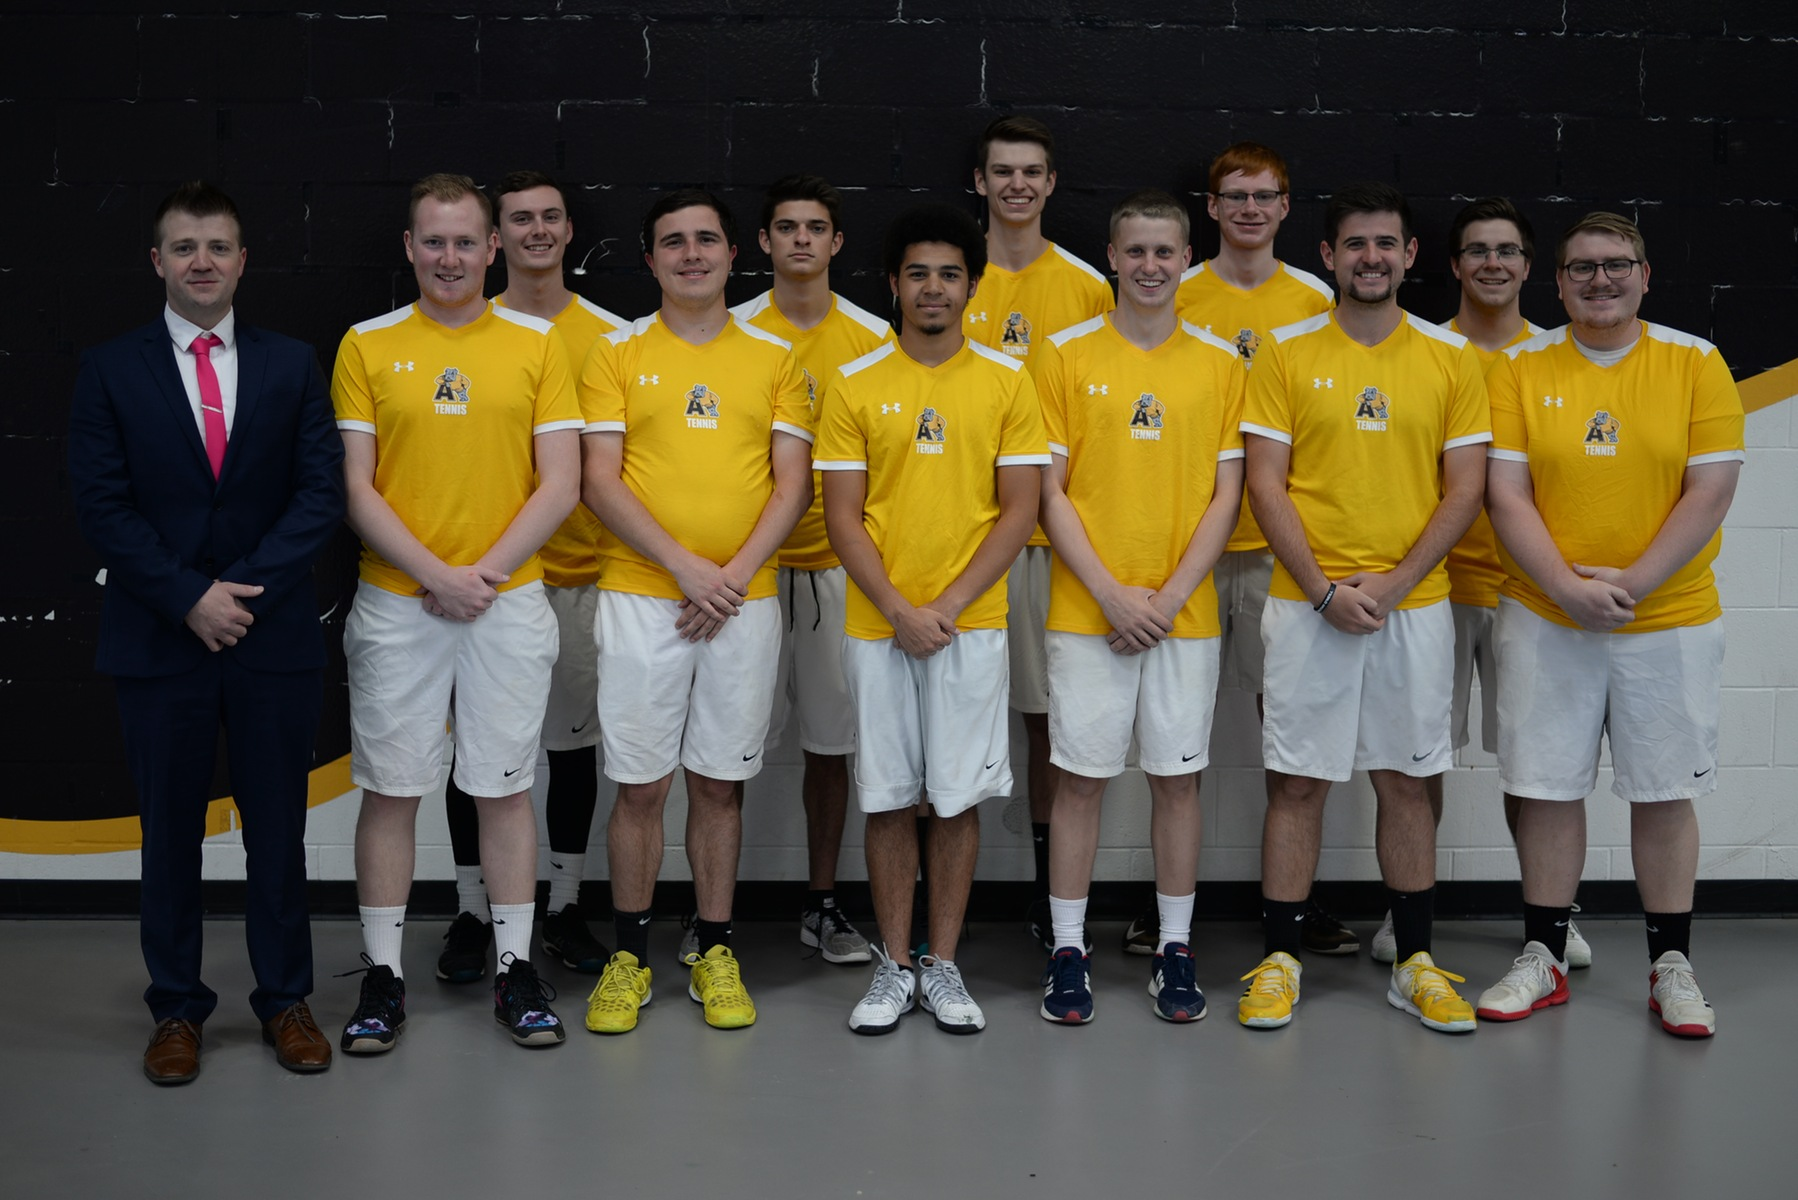 The 2017-18 Adrian College men's tennis team. (Photo by Patrick Stewart)